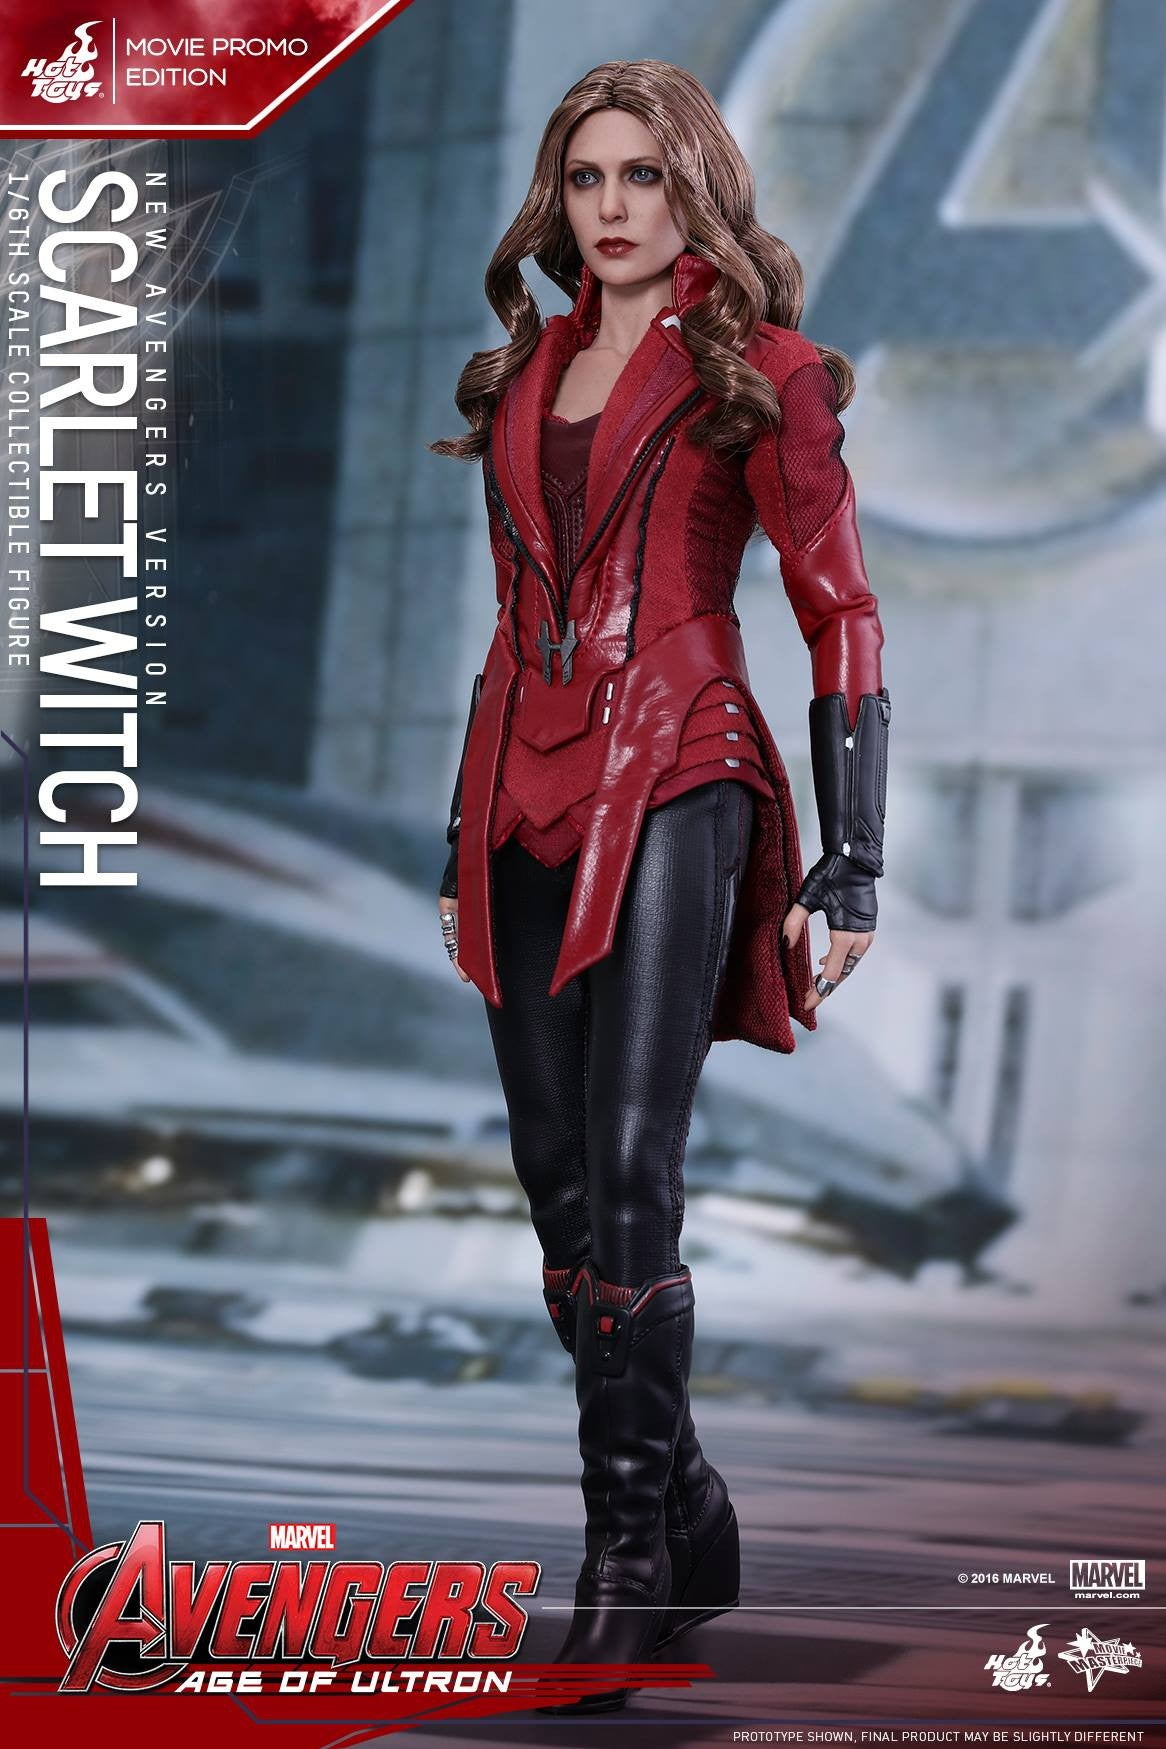 Toys - Avengers: Age of Ultron - Scarlet Witch (New Avengers Version) Movie Promo MMS357 - Marvelous Toys - 5